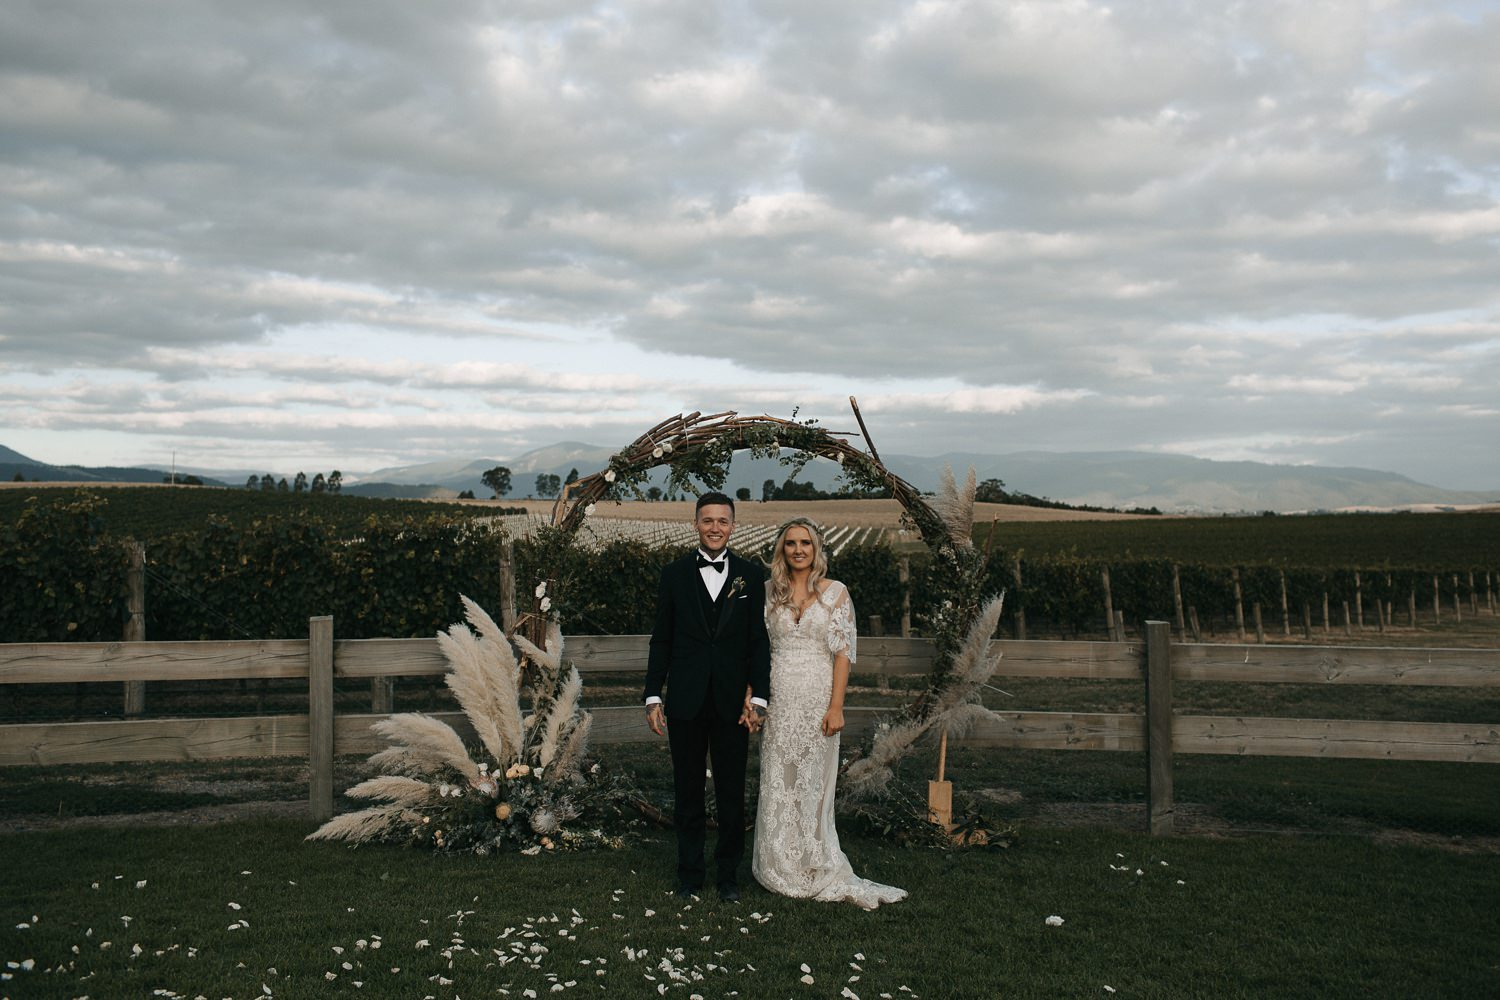 zonzo-estate-yarra-valley-wedding-photographer_0084.jpg